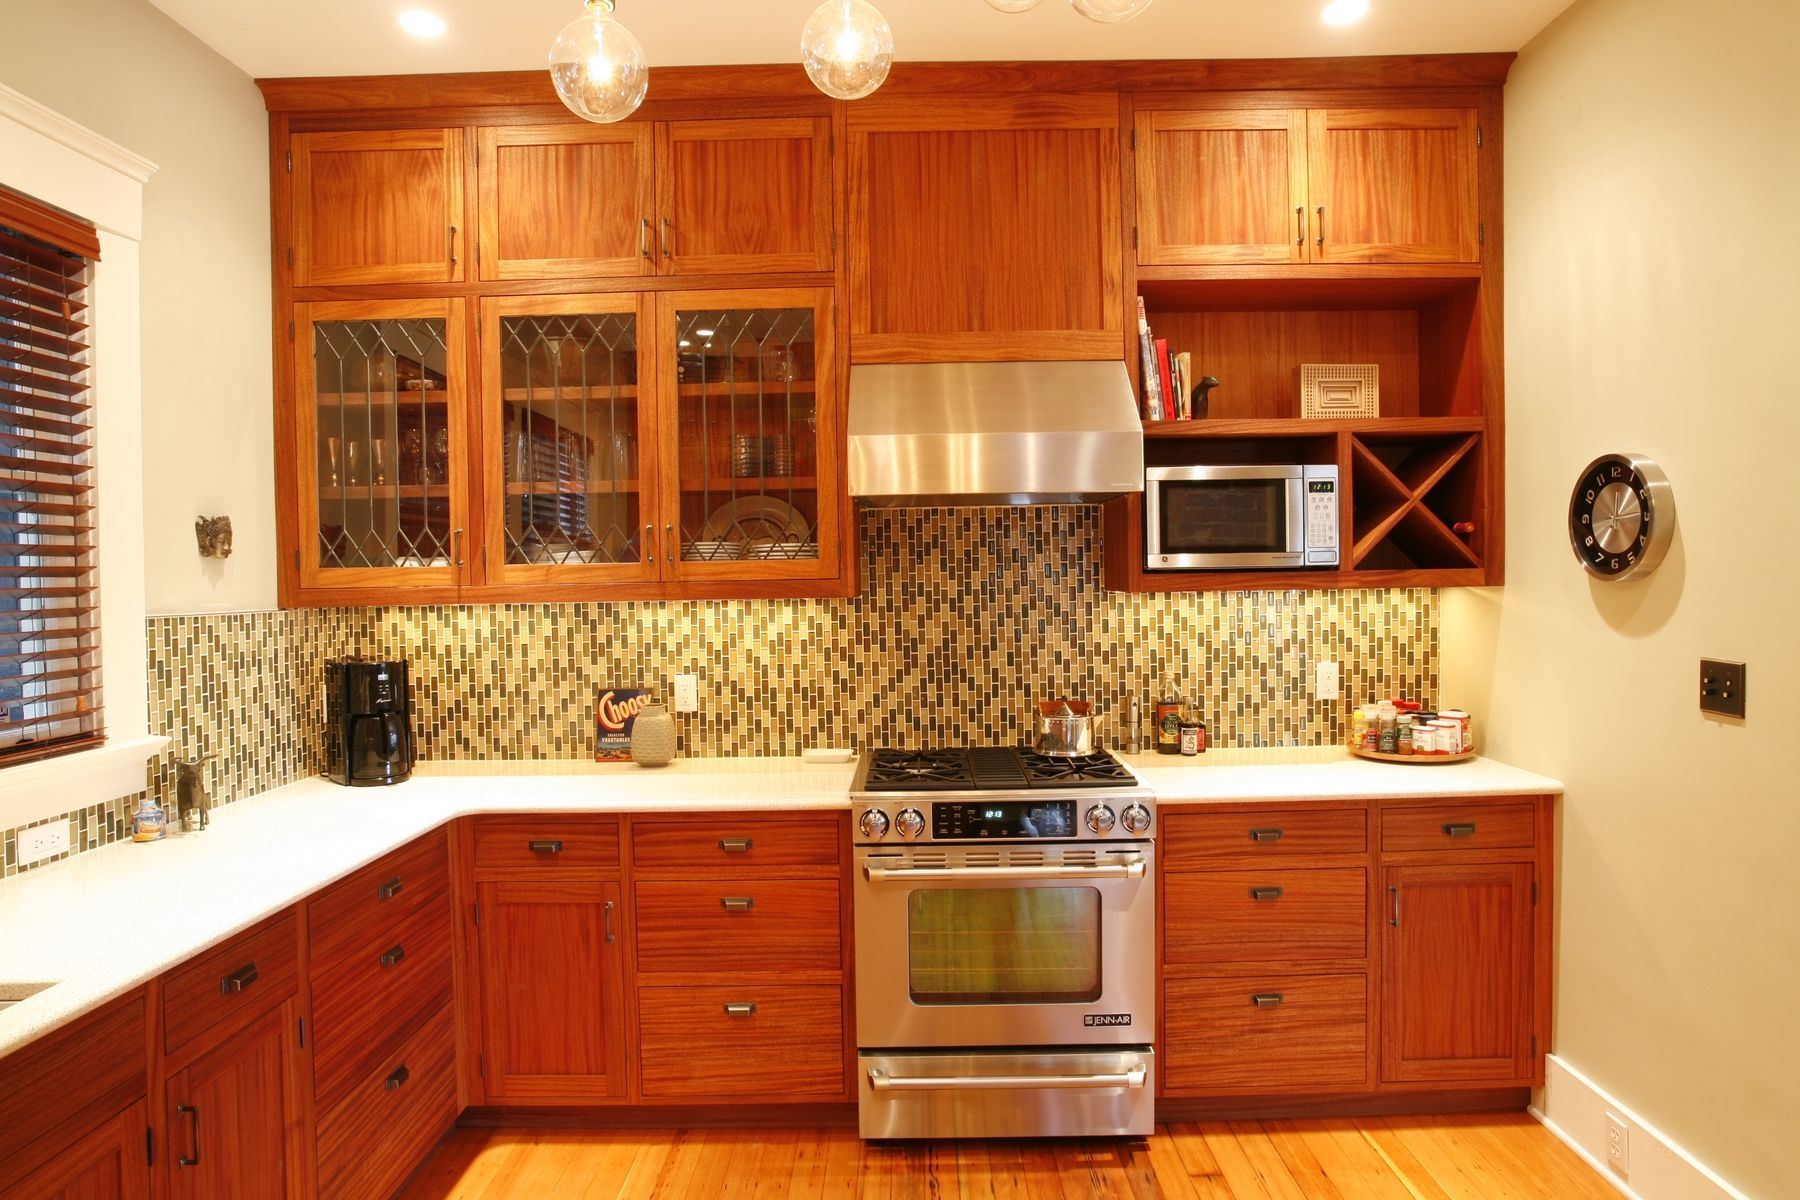 Recessed Panel Door African Mahogany Kitchen Cabinets With Flat Face  Drawers. | Mahogany Or Teak Kitchen Cabinets | Pinterest | Teak, Drawers  And Kitchens